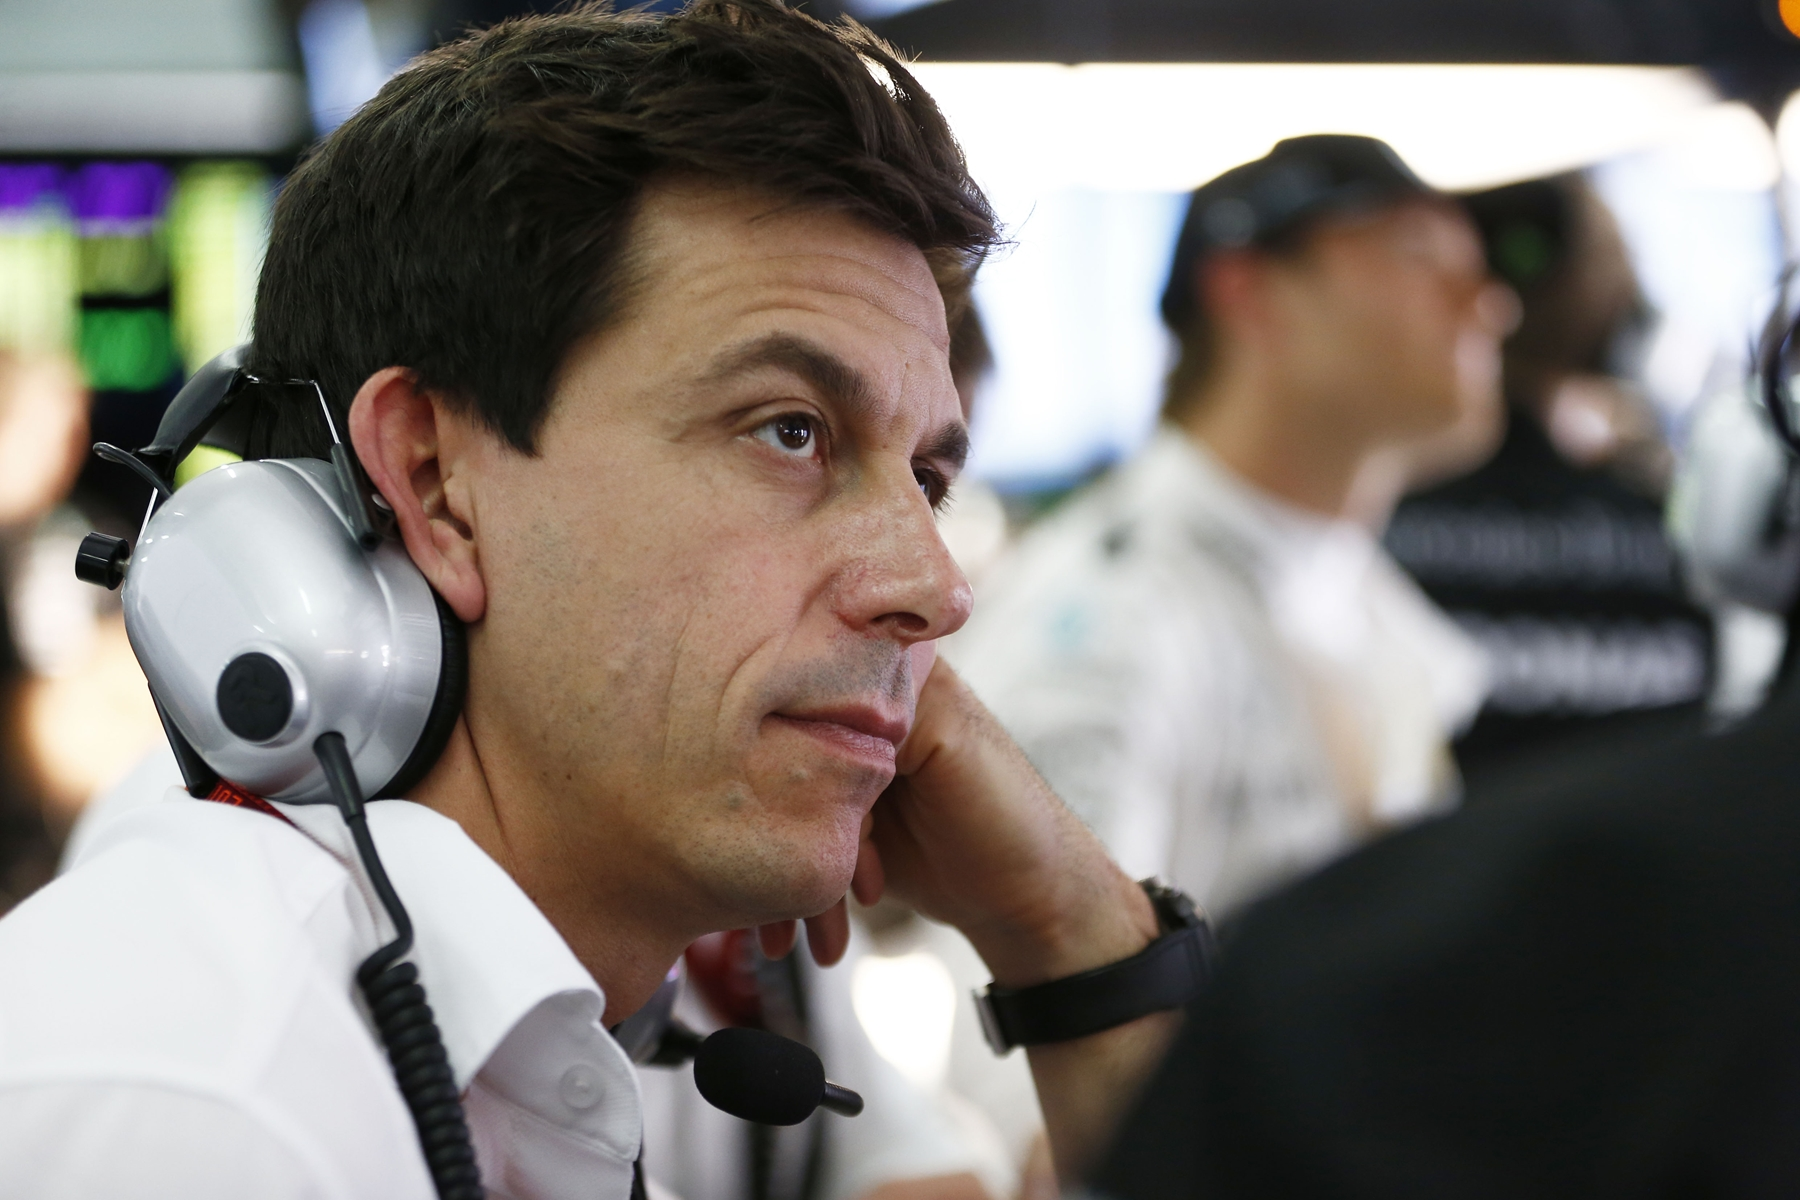 Toto-Wolff-Malaysian-Grand-Prix-2017-Silver-Arrow-Mercedes